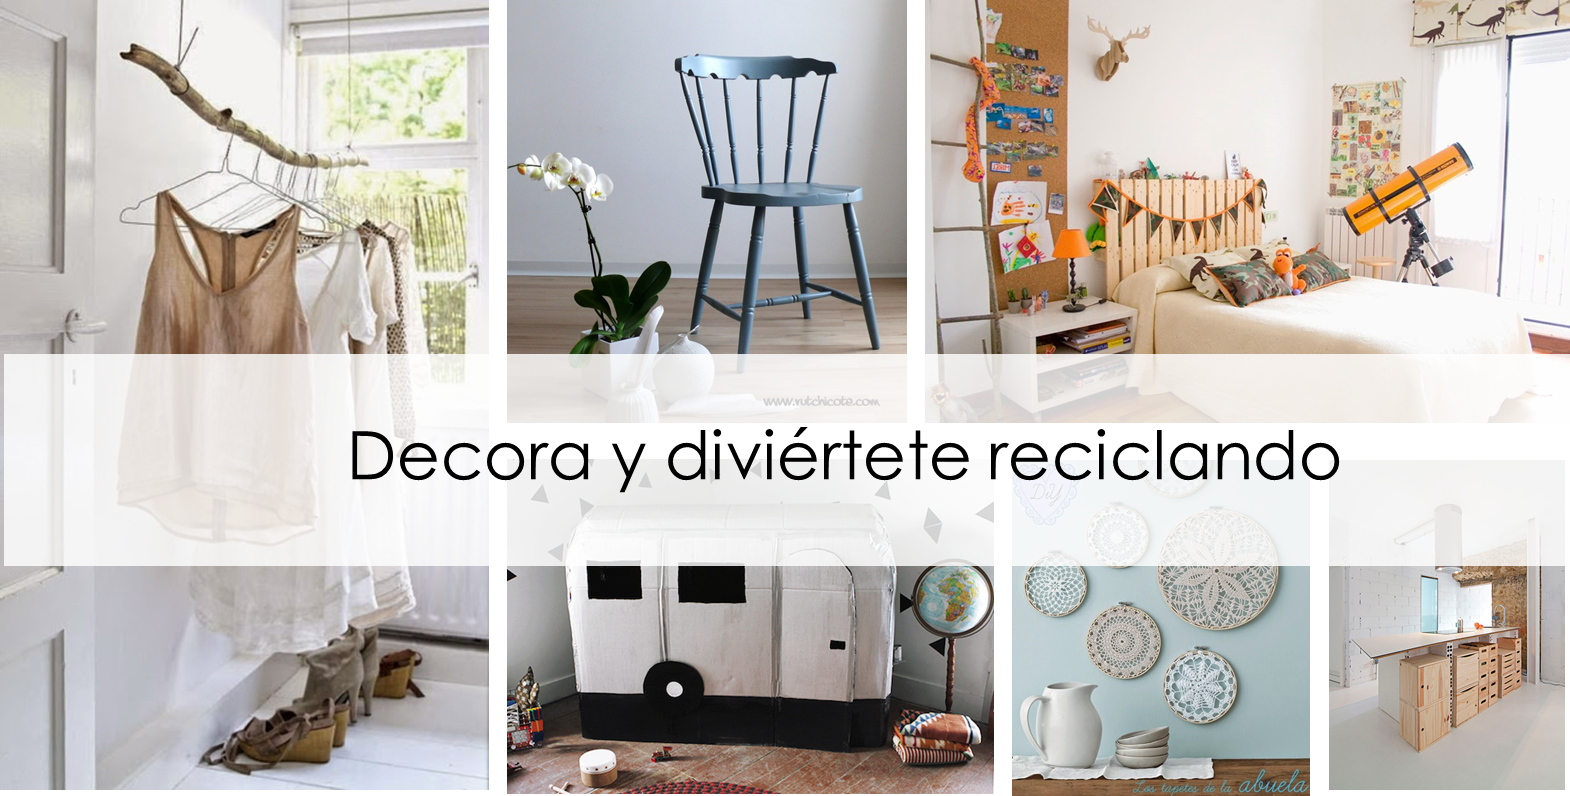 Decorar reciclando objetos reciclar tubos pvc with for Ideas para decorar reciclando